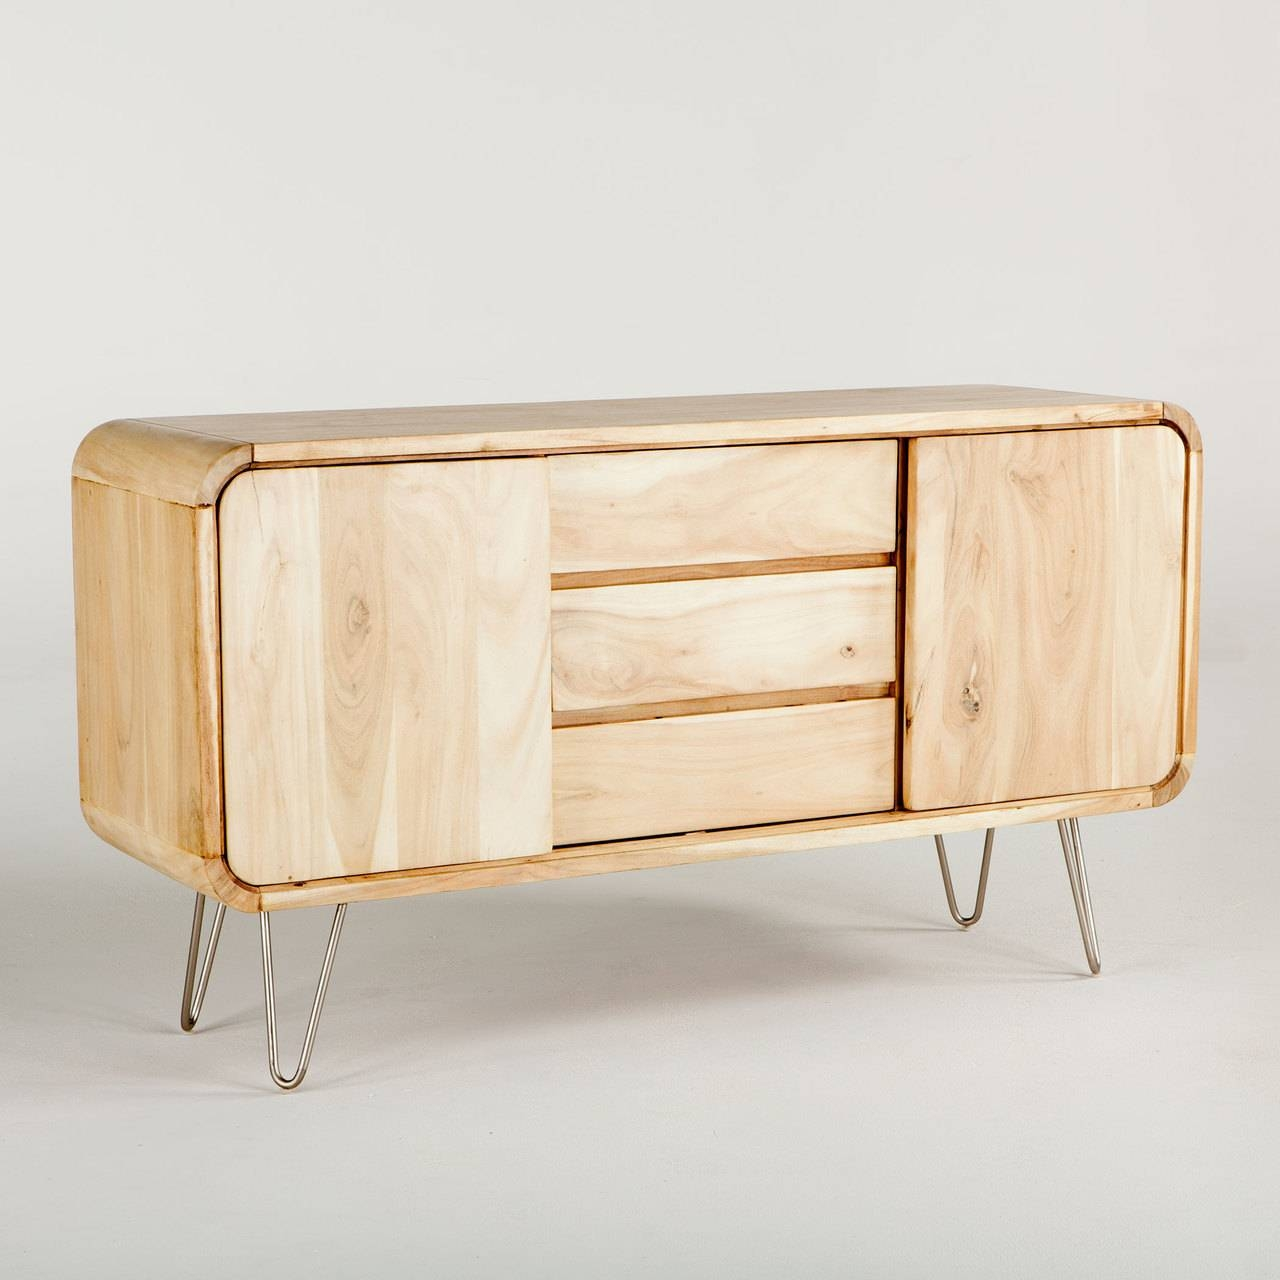 Vail Solid Wood Sideboard In Natural W/ Steel Legs – Simply Austin With Regard To Real Wood Sideboard (#20 of 20)